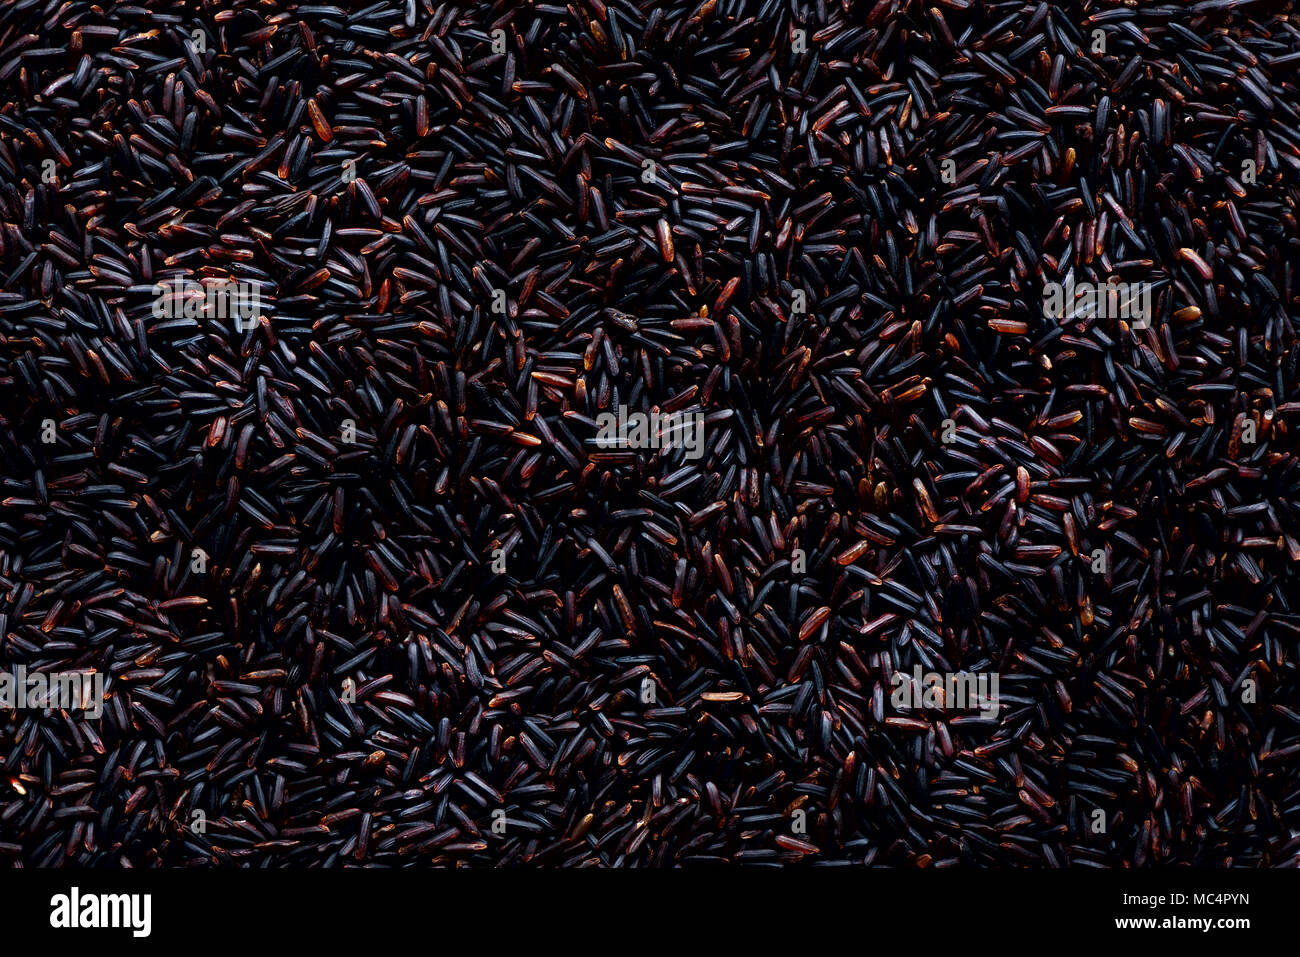 Raw dark red, balck purple rice, texture. Riceberry pattern background. Food ingredient background. Top view, healthy lifestyle concept. - Stock Image